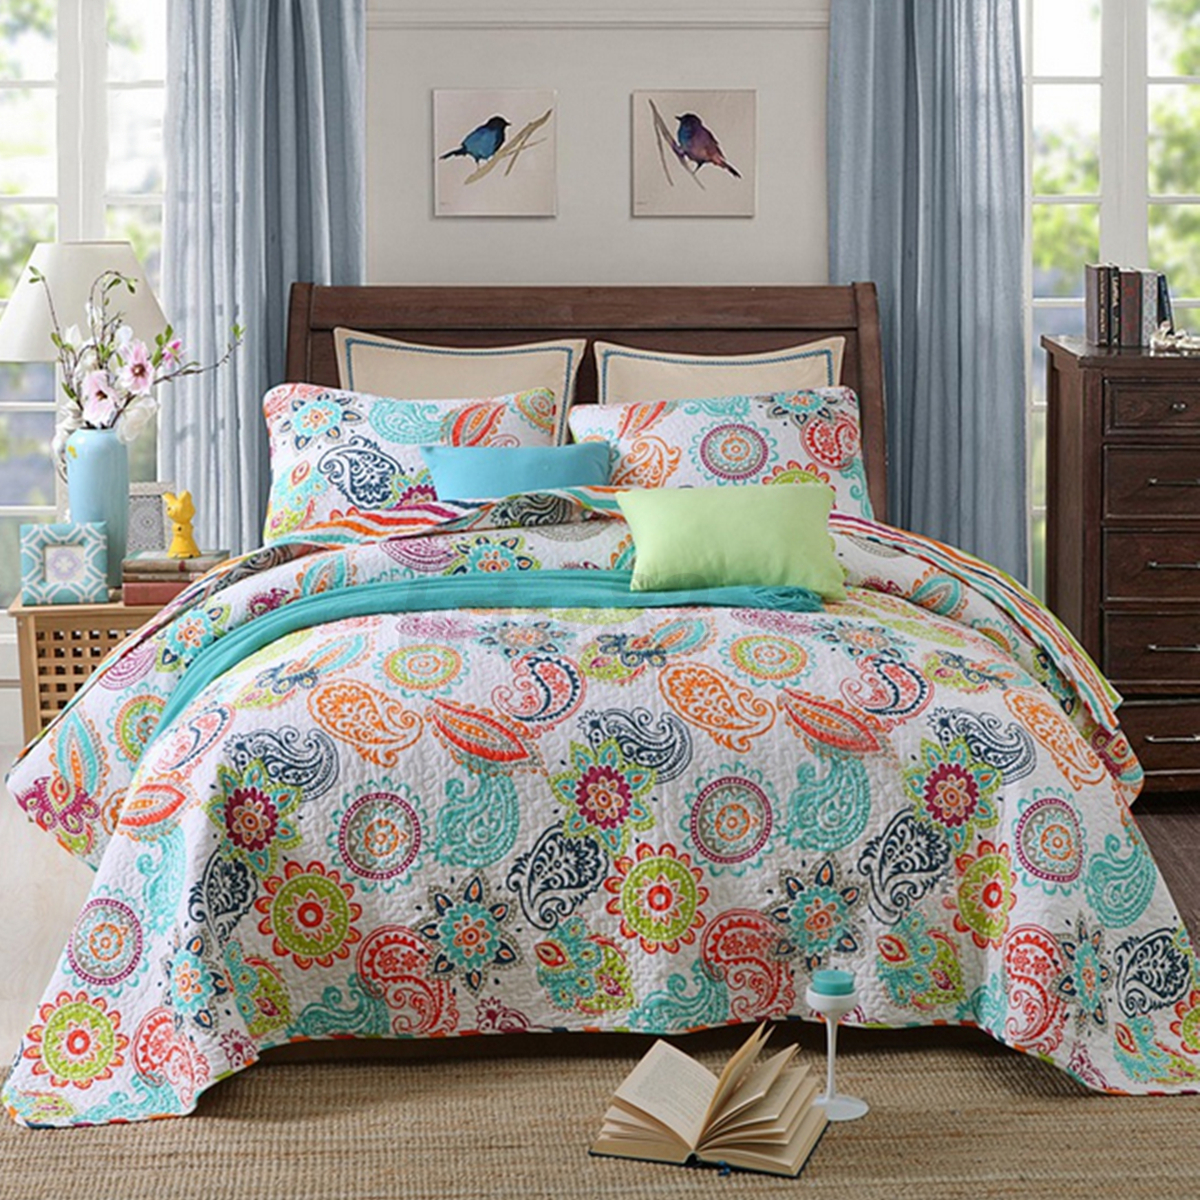 King Size Coverlet Australia 3pcs Cotton Quilted Coverlet Bedspread Patchwork Queen